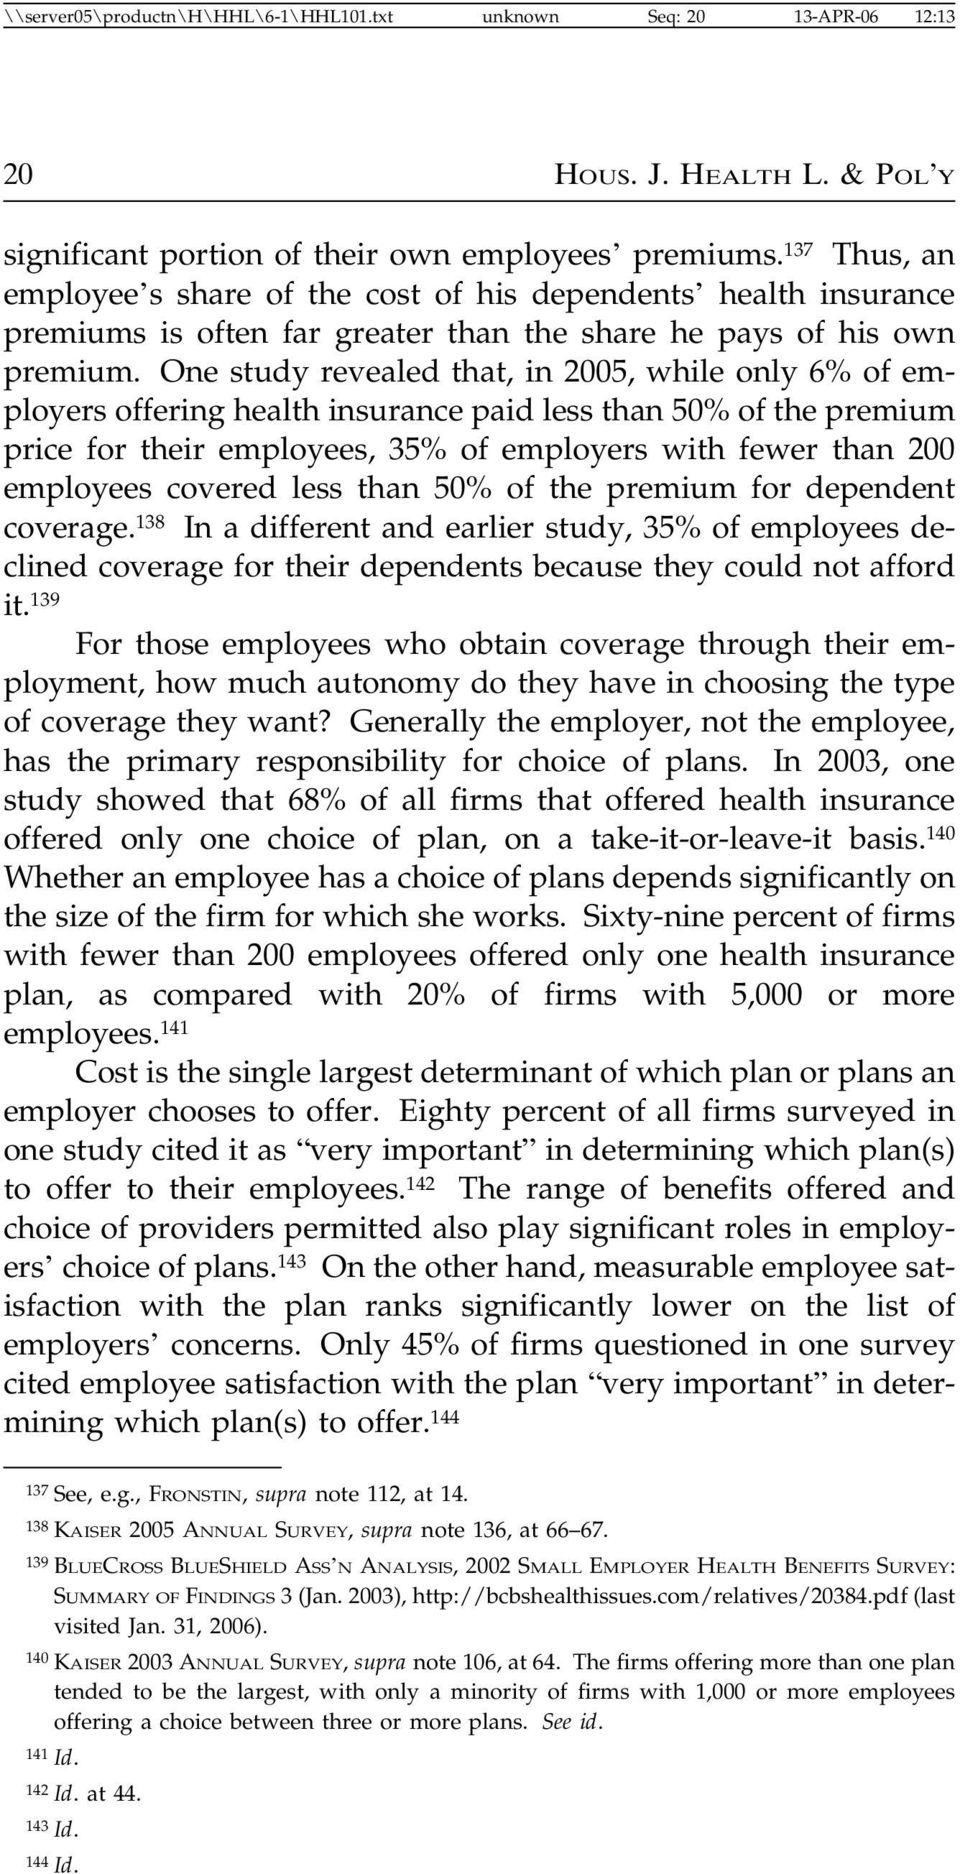 One study revealed that, in 2005, while only 6% of employers offering health insurance paid less than 50% of the premium price for their employees, 35% of employers with fewer than 200 employees